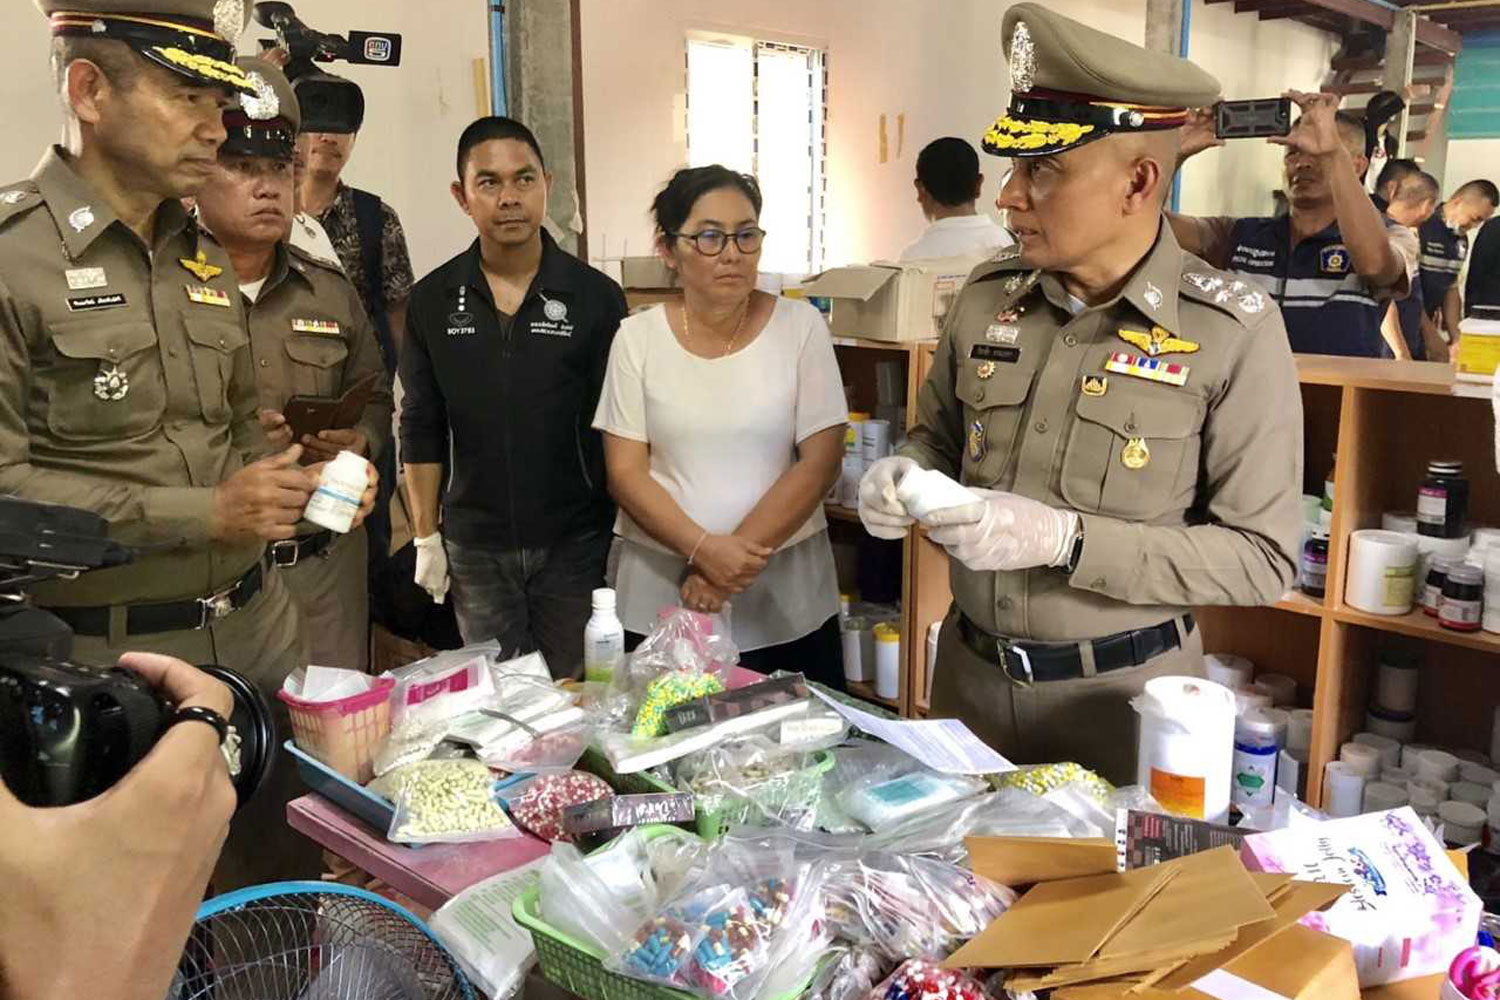 Police examine quantities of weight-loss drugs found illegally produced at the house of suspect Wassapassorn Sulamnat, 52, in Kalasin's Na Mon district on Saturday. They raided two warehouses and seized more than 1 million weight-loss capsules. (Photo by Yongyuth Phuphuangpet)